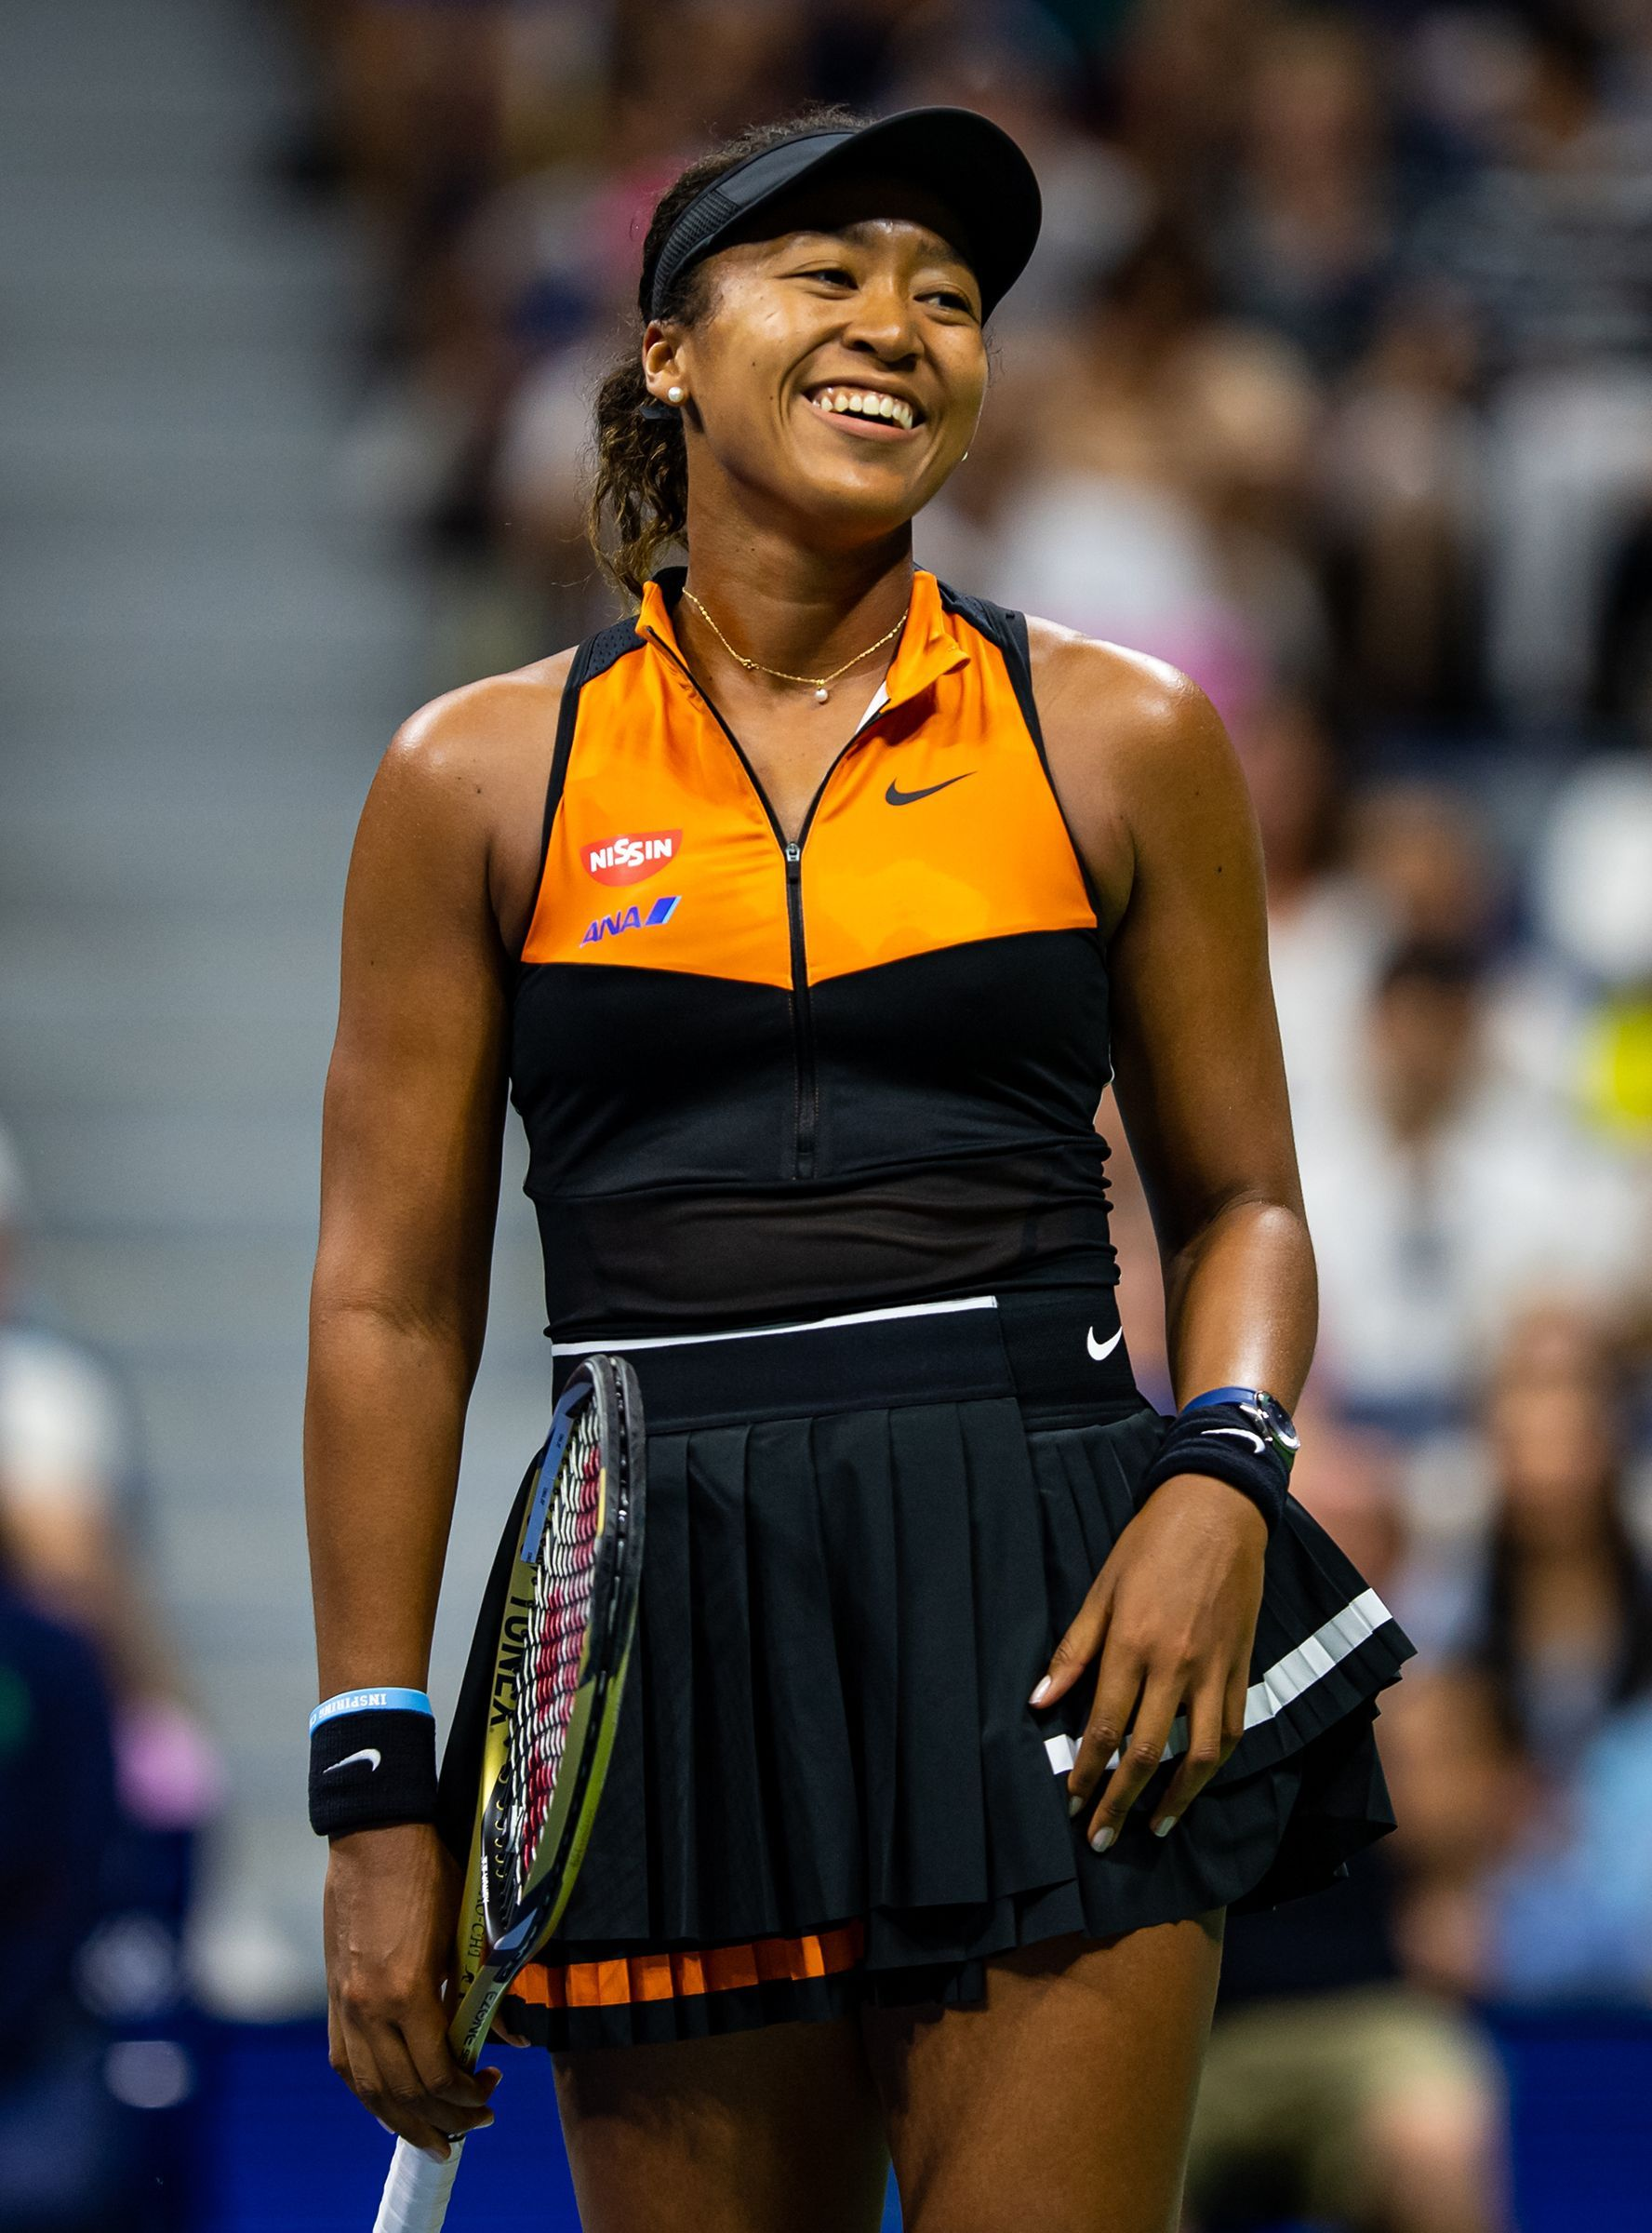 Naomi Osaka S Gesture After Besting Coco Gauff At U S Open Will Capture Your Heart Tennis Fashion Tennis Players Female Tennis Clothes